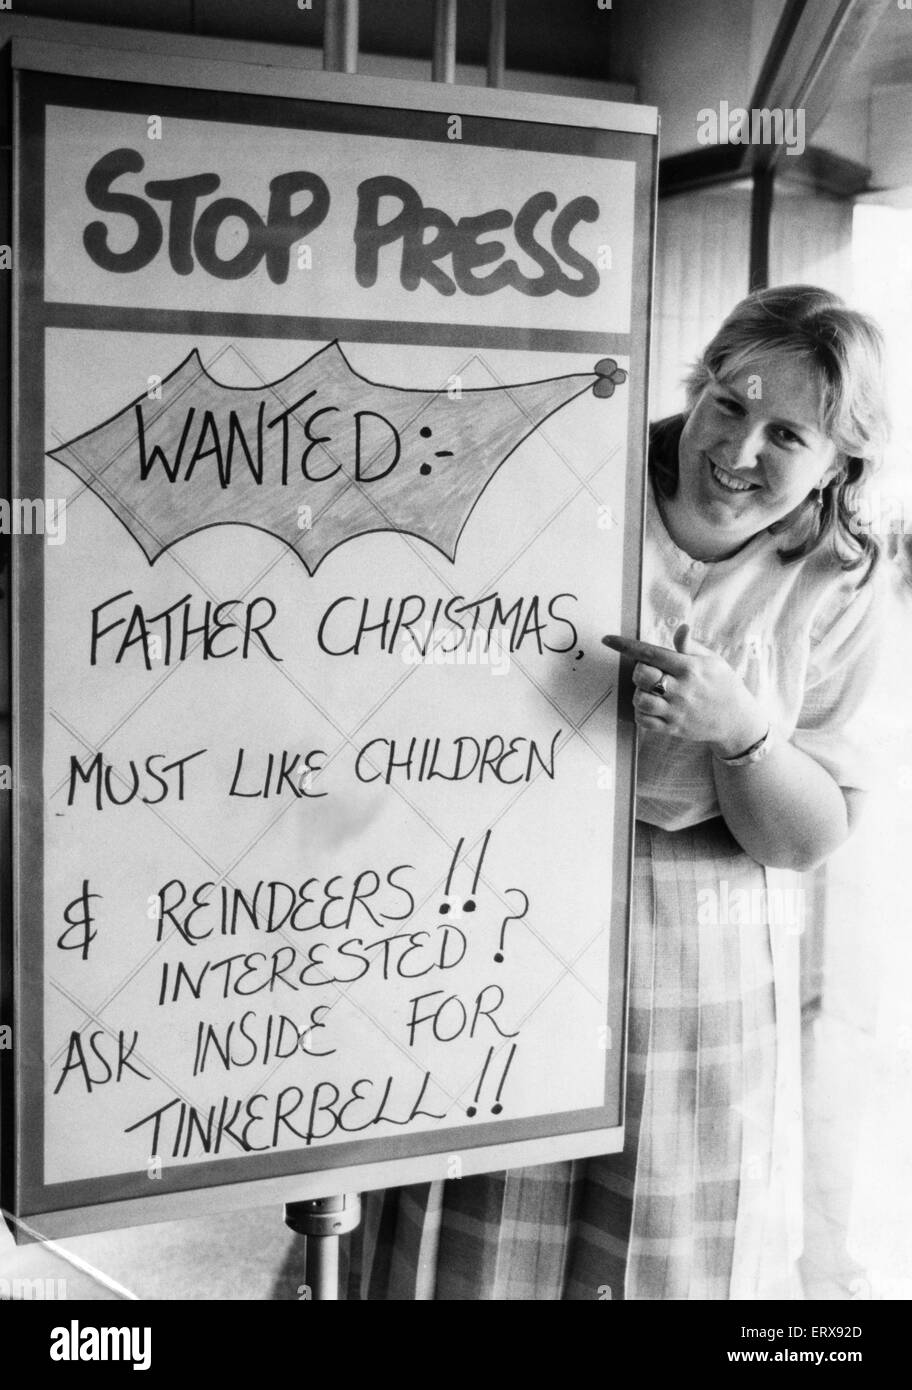 Shirley Jeffrey from Lord Street Job Centre with the Santa wanted sign. 11th October 1984 - Stock Image